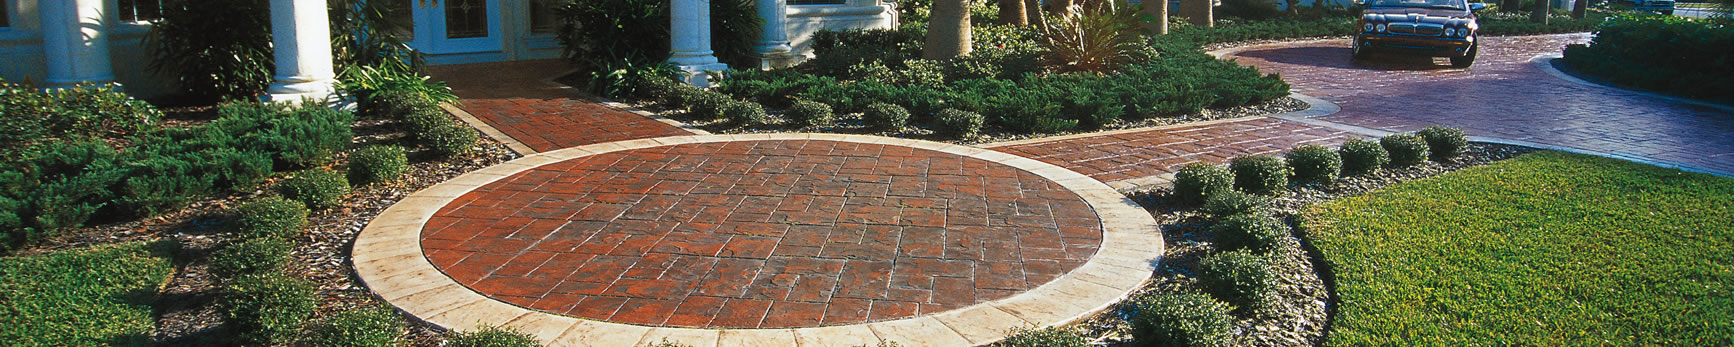 10 Step Process Of Stamped Concrete